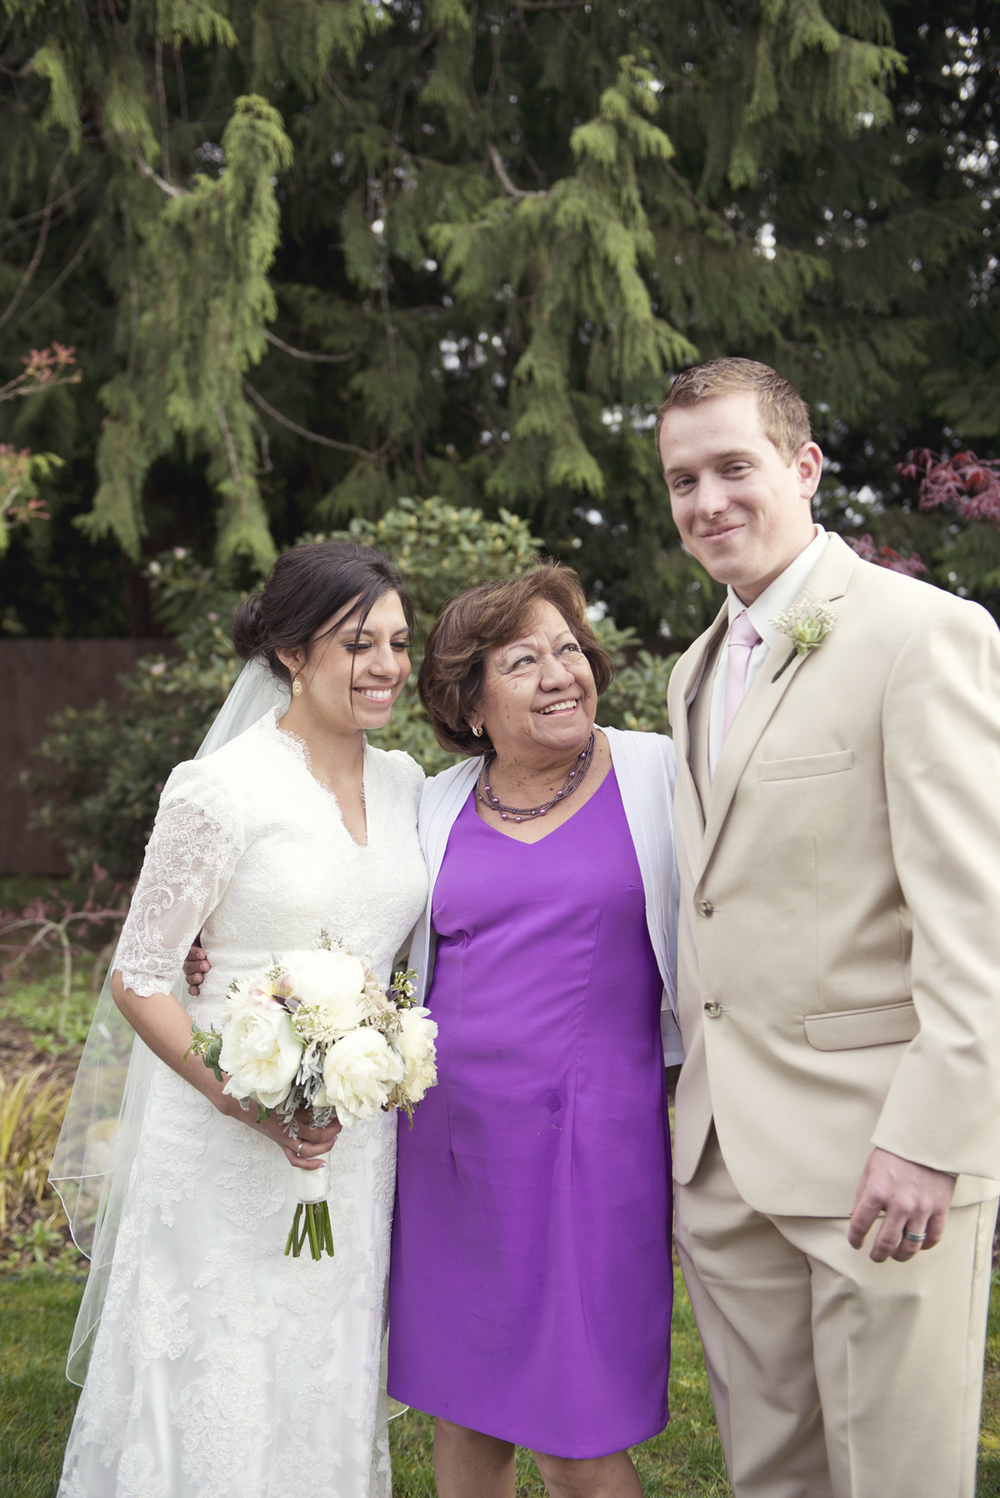 seattleweddingphotography_021.jpg